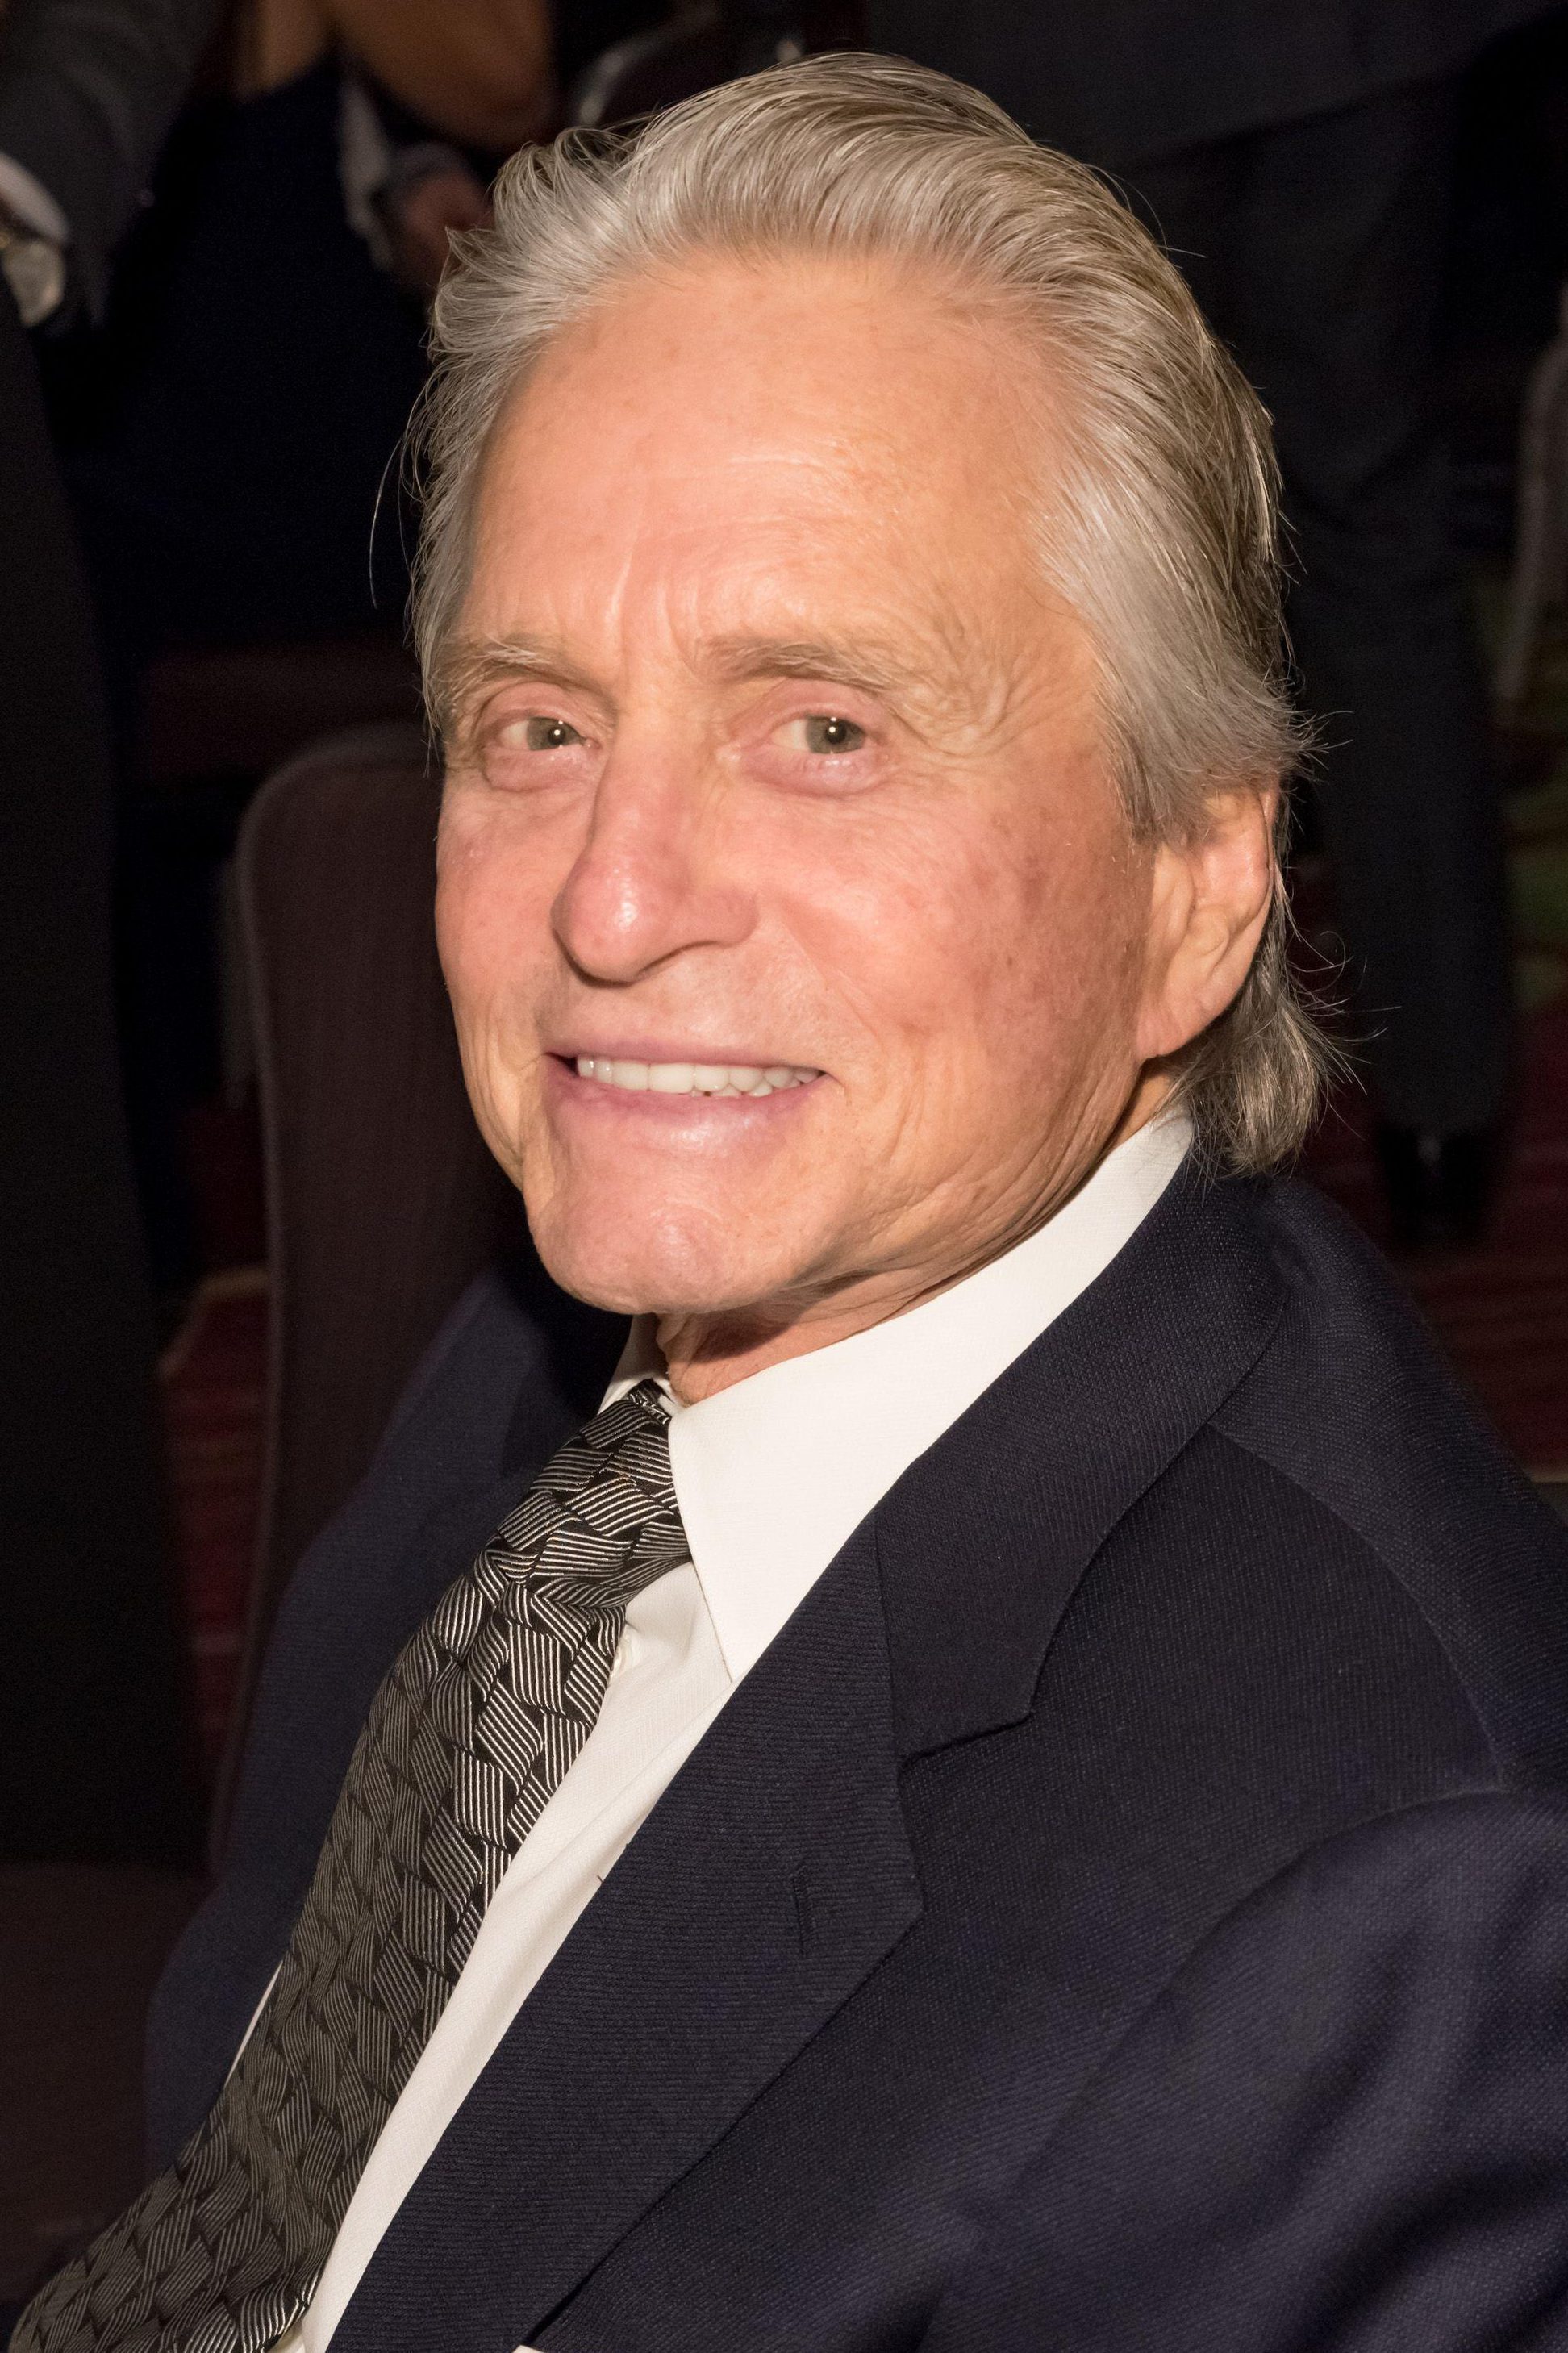 Michael Douglas dragged into Hollywood abuse scandal after an ex-employee claimed he performed sex act in front of her